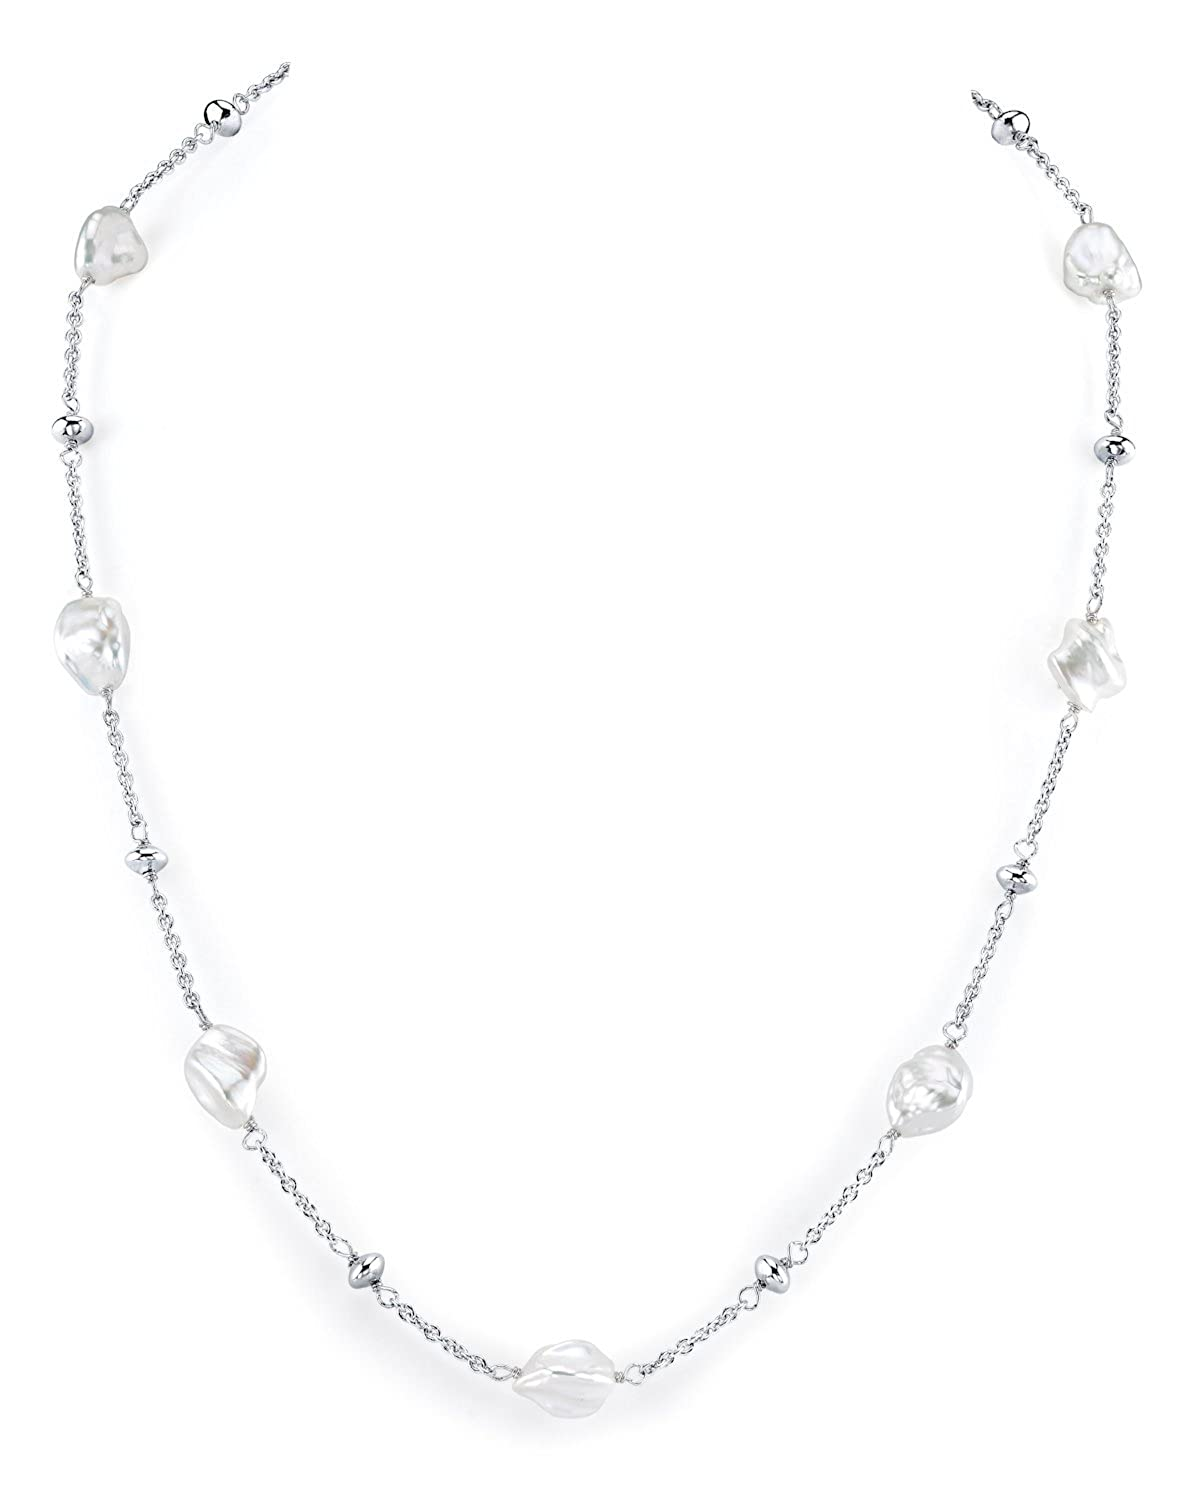 Keshi Shaped Freshwater Cultured Pearl Link Necklace